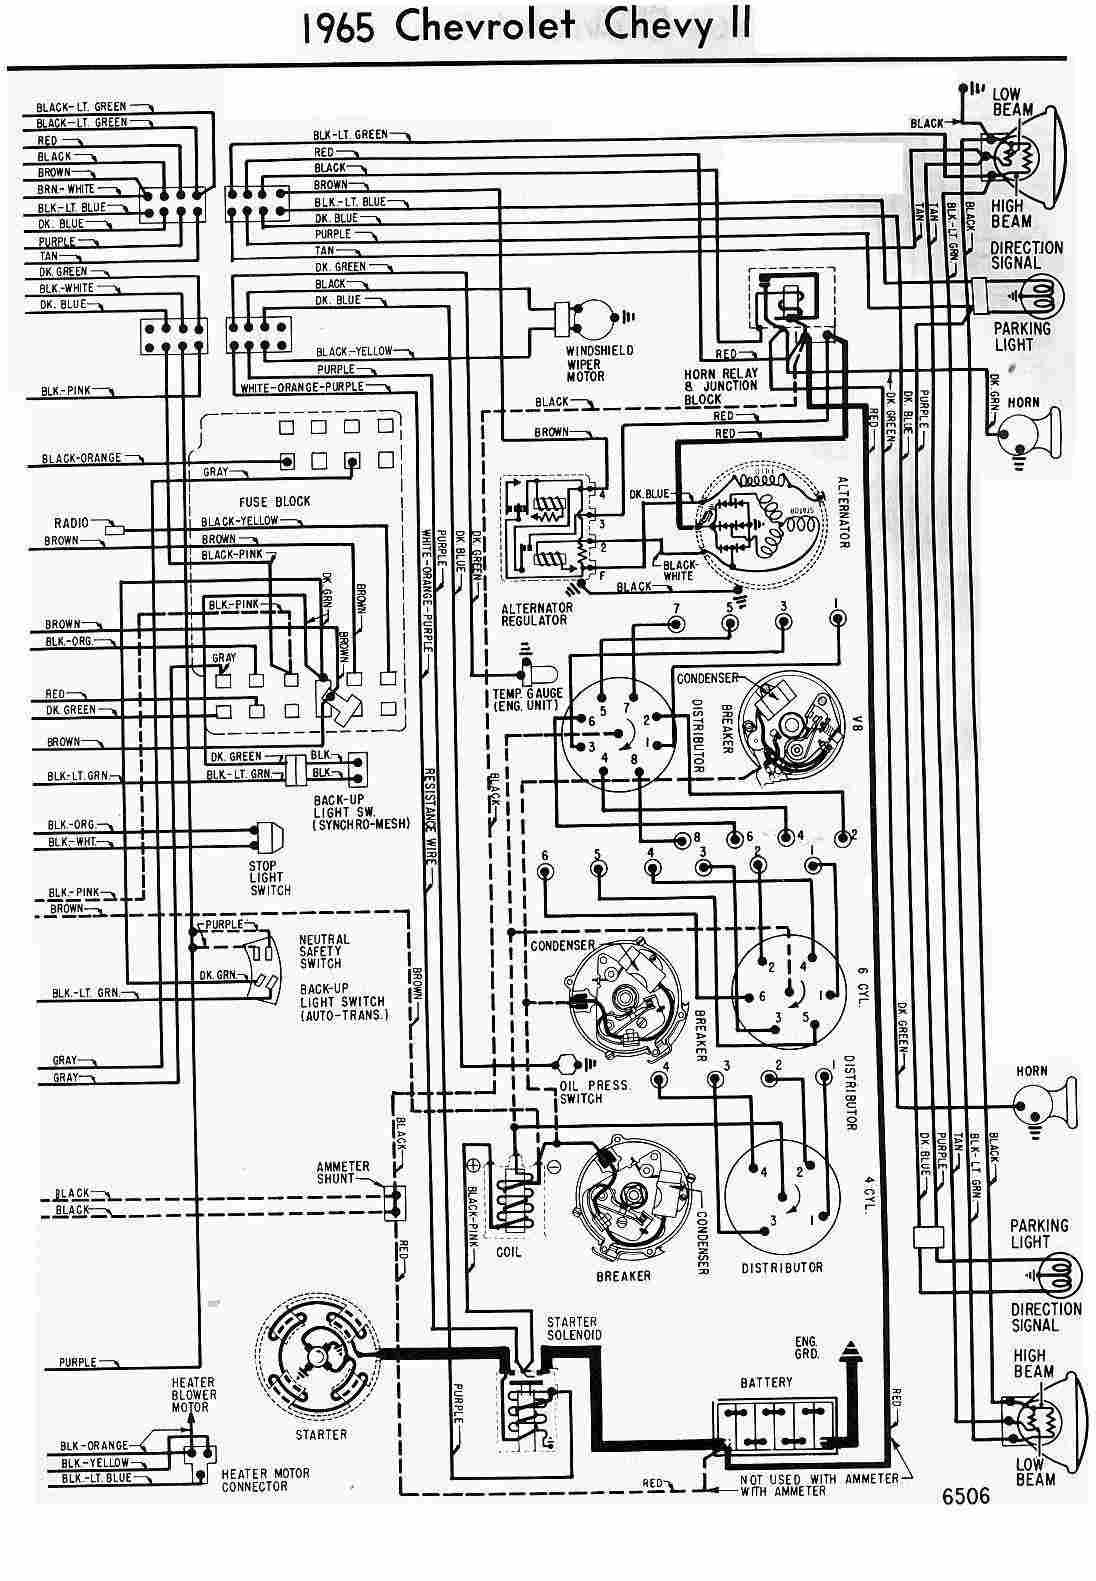 1964 chevy malibu heater wiring diagram free download wiring diagram u2022 rh msblog co 1968 pontiac wiring diagram 1964 pontiac catalina wiring diagram